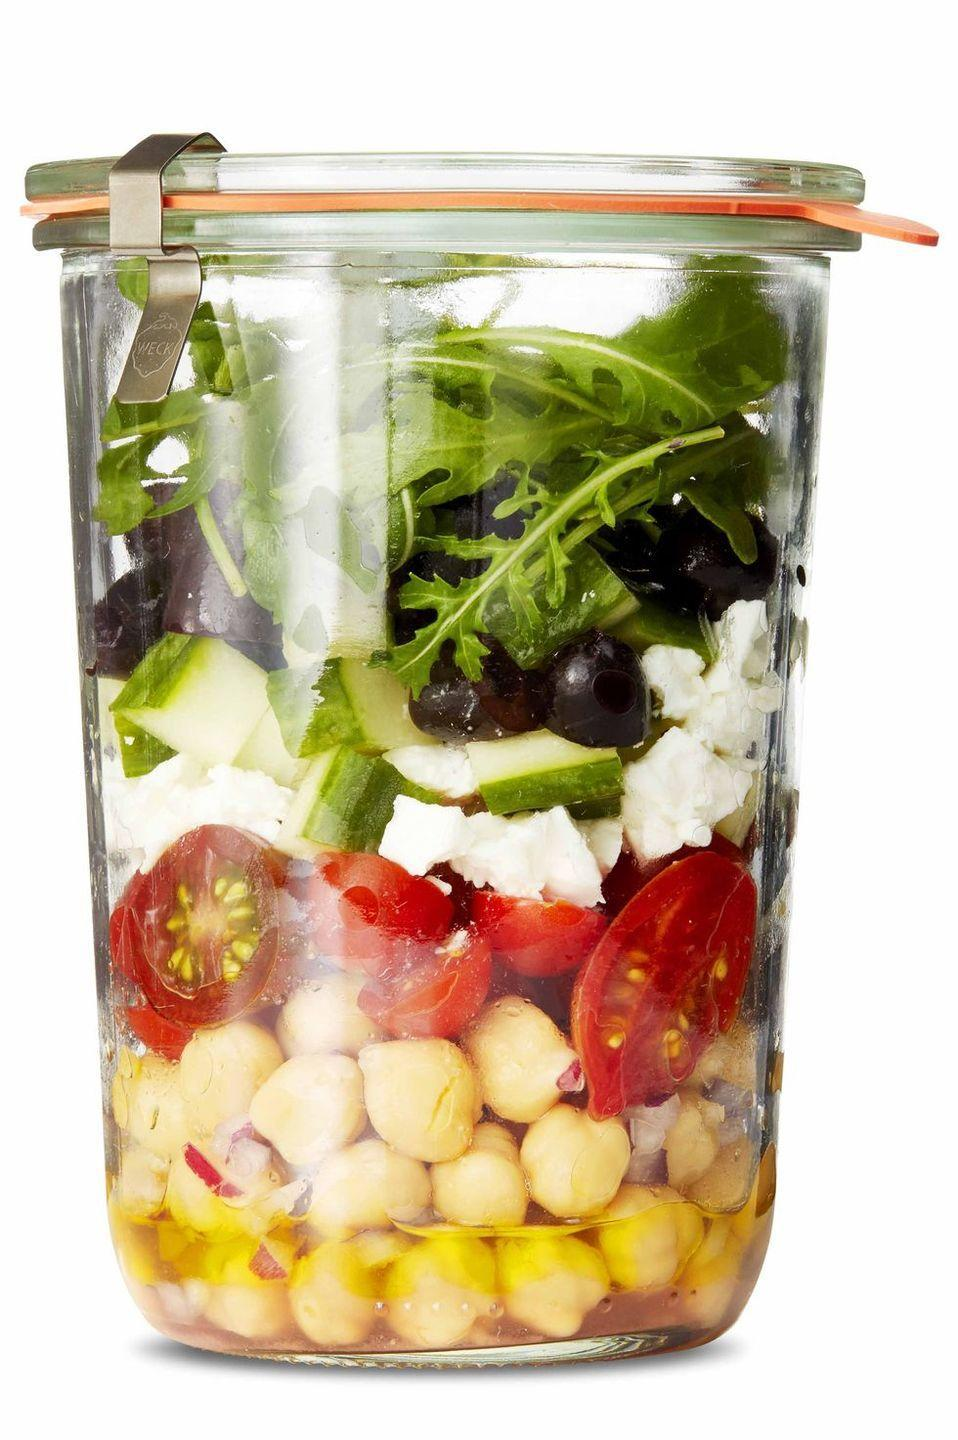 """<p>This 10-minute meatless salad could work as a last-minute appetizer or quick lunch. </p><p><a href=""""https://www.womansday.com/food-recipes/food-drinks/a25941107/marinated-chickpea-greek-salad-recipe/"""" rel=""""nofollow noopener"""" target=""""_blank"""" data-ylk=""""slk:Get the recipe for Marinated Chickpea Greek Salad."""" class=""""link rapid-noclick-resp""""><strong><em>Get the recipe for Marinated Chickpea Greek Salad.</em></strong></a></p>"""